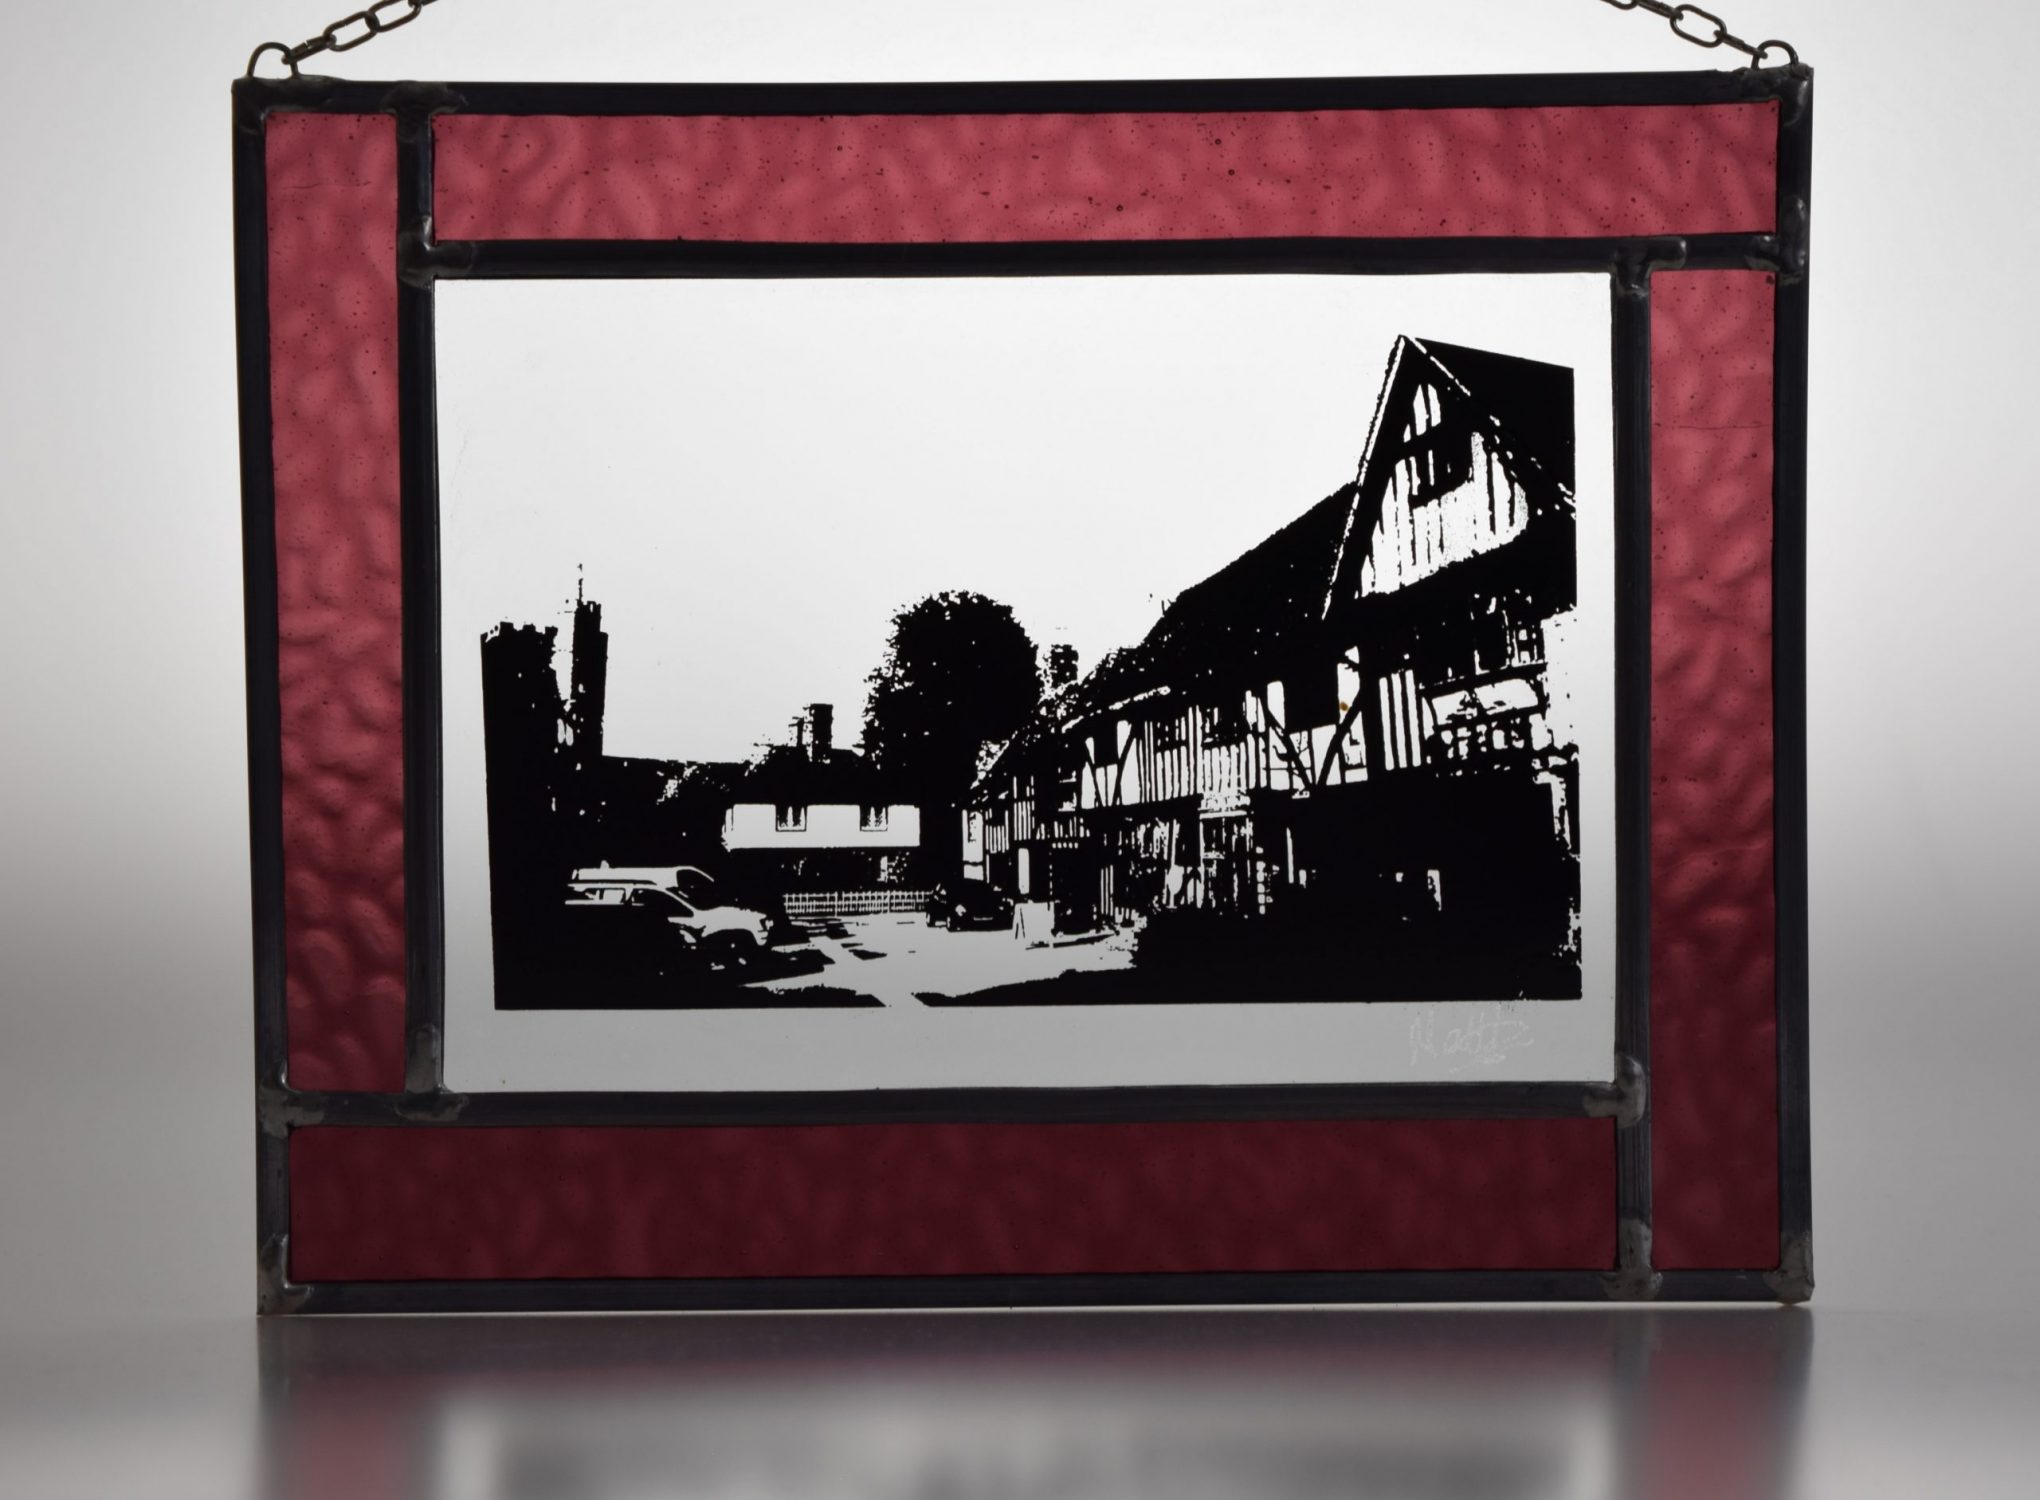 Stained glass picture of Chilham medieval village in Kent